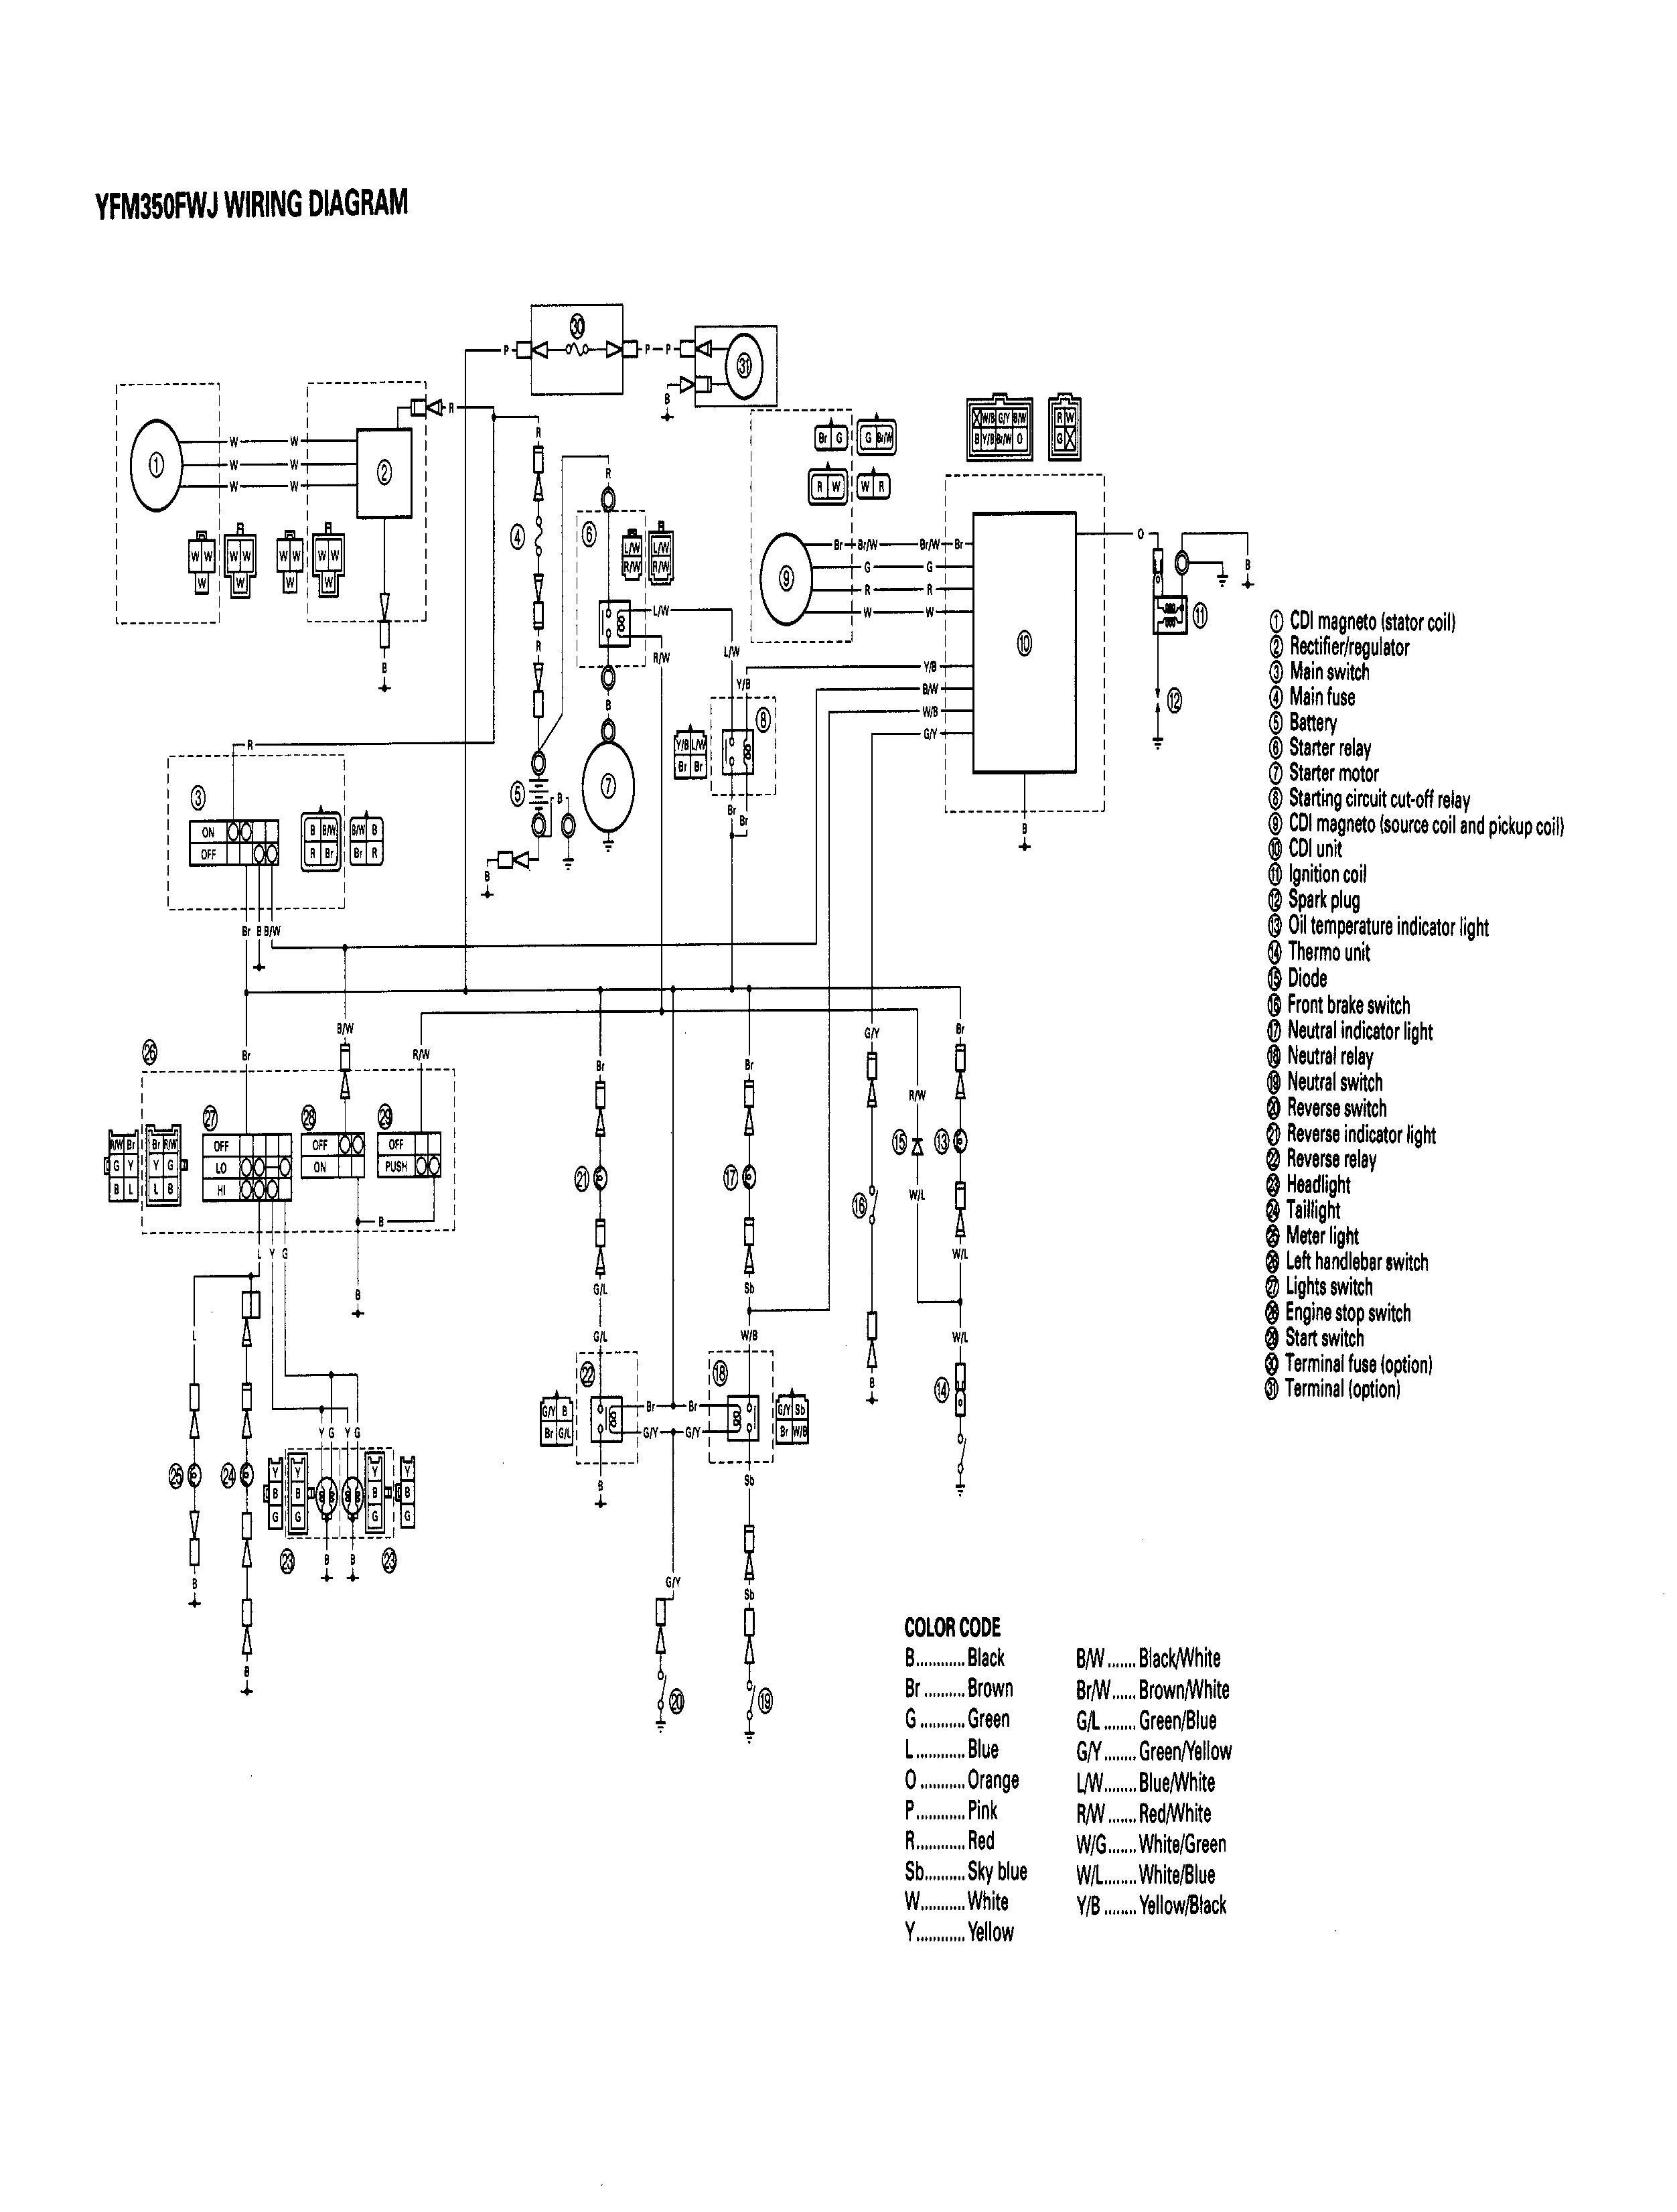 diagram] rancher 350 4x4 atv wiring diagram full version hd quality wiring  diagram - carryboyphil.k-danse.fr  k-danse.fr